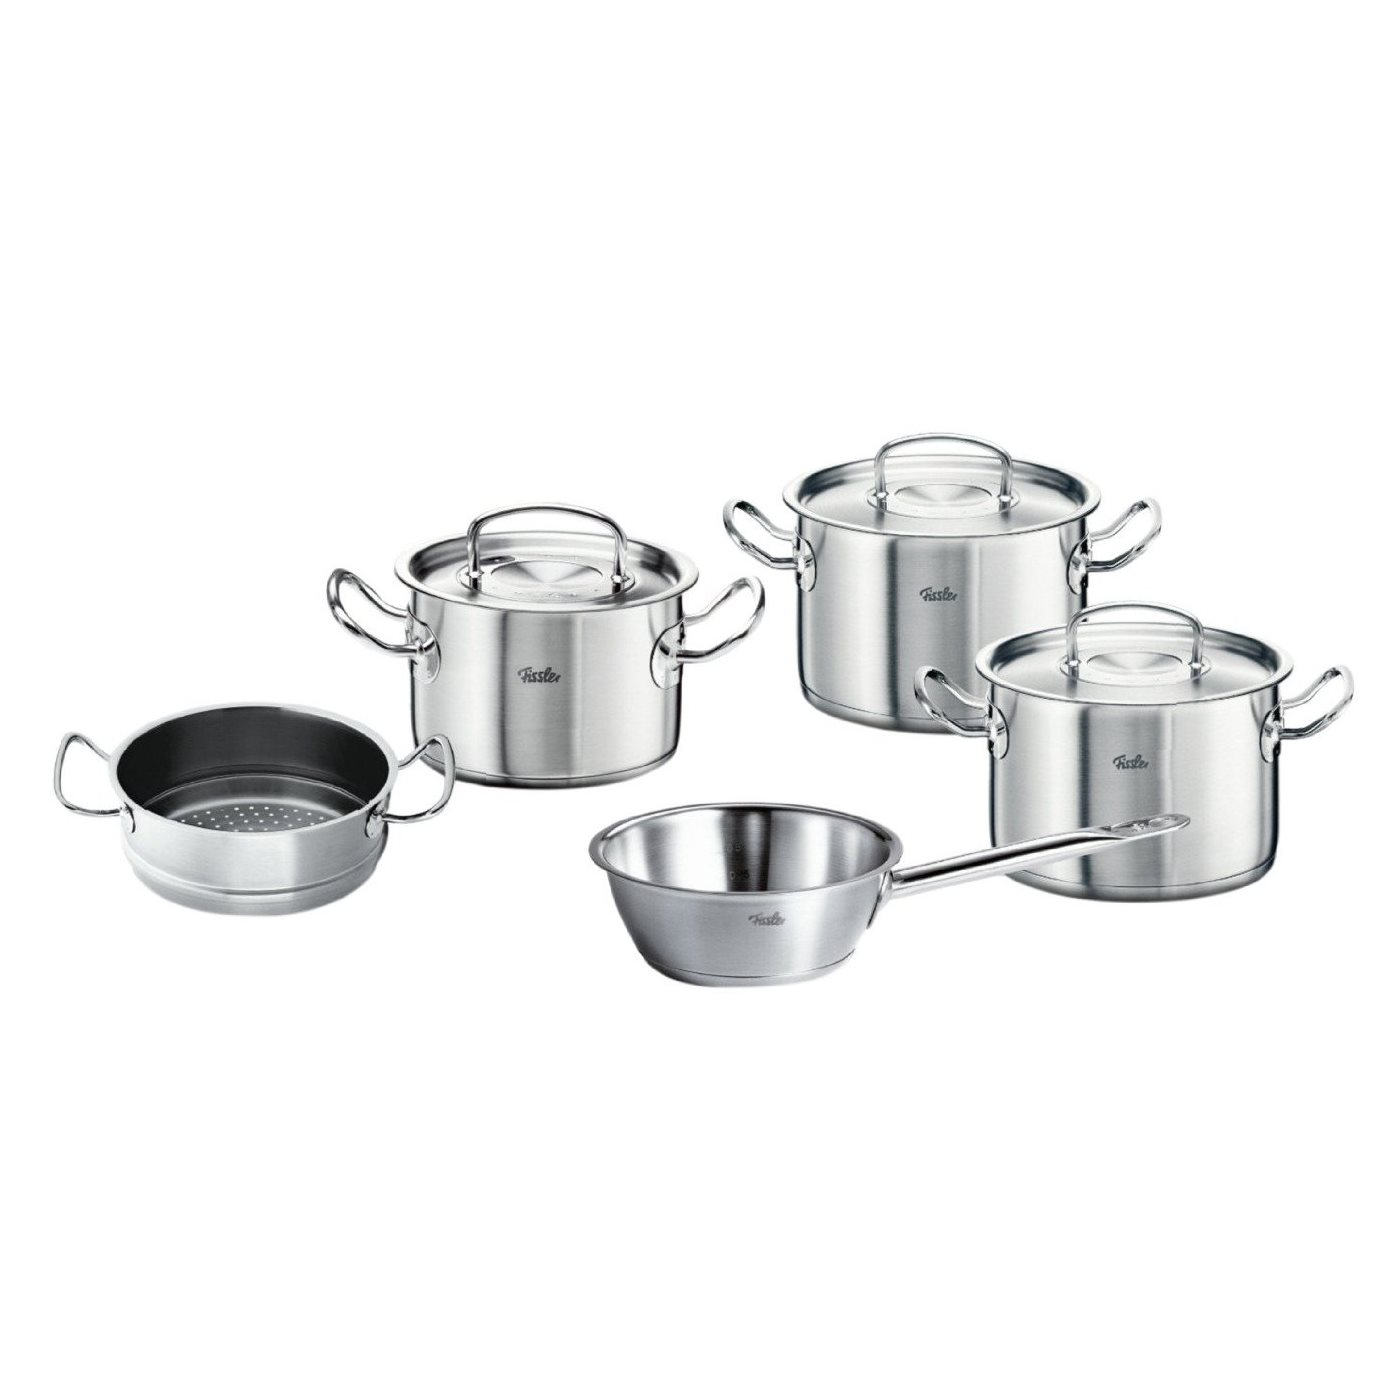 Fissler Profi Collection Set Fissler Original Profi Collection Topfset 5 Teilig Mit